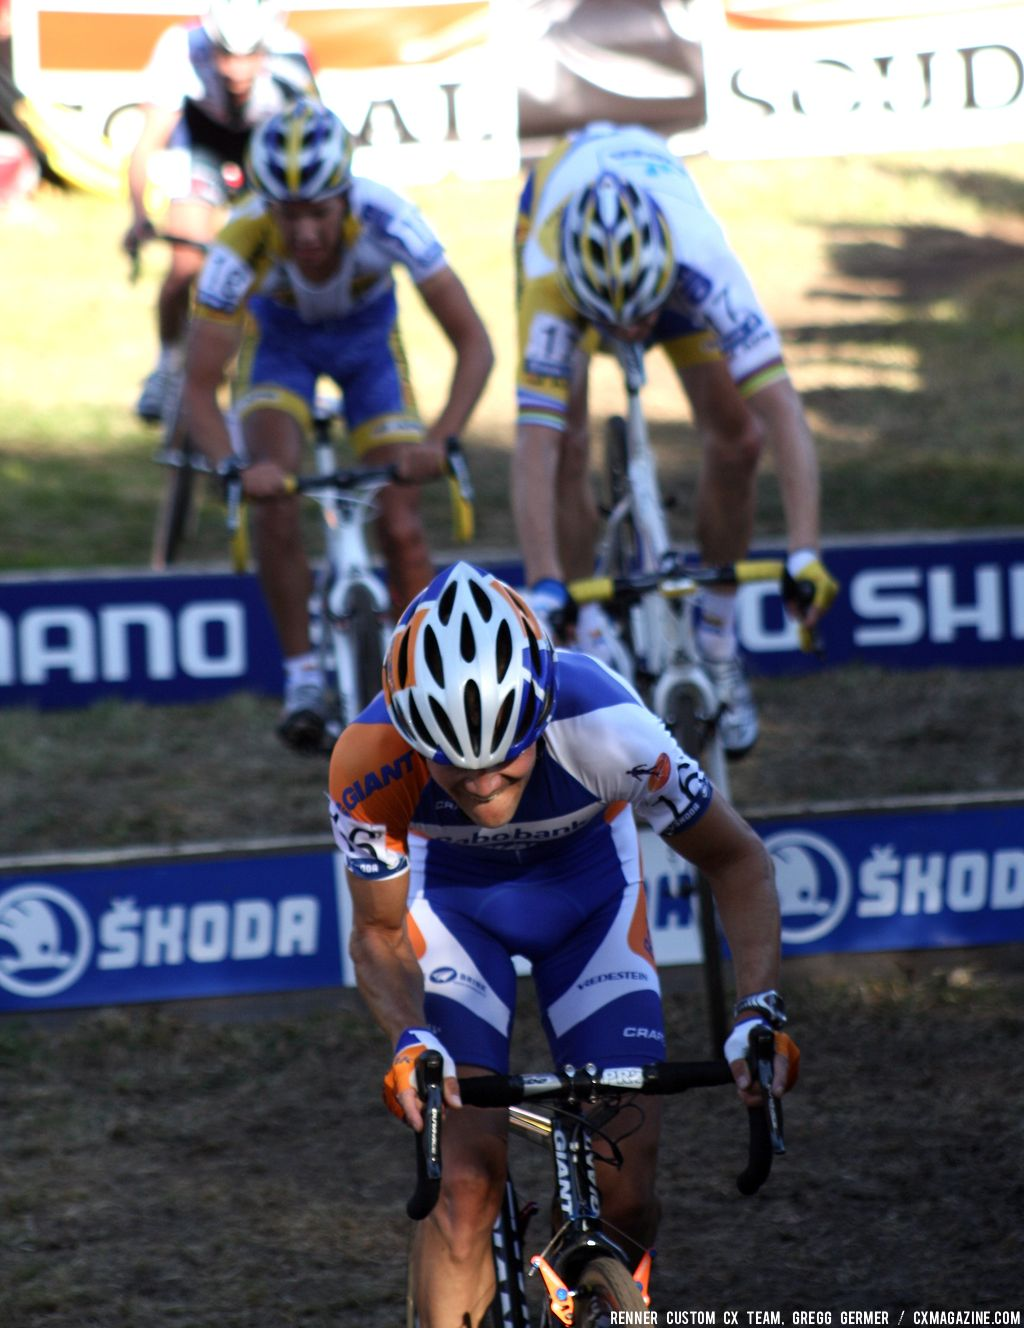 Men\'s Chase Group bunny hops the barriers. © Renner Custom CX Team, Gregg Germer